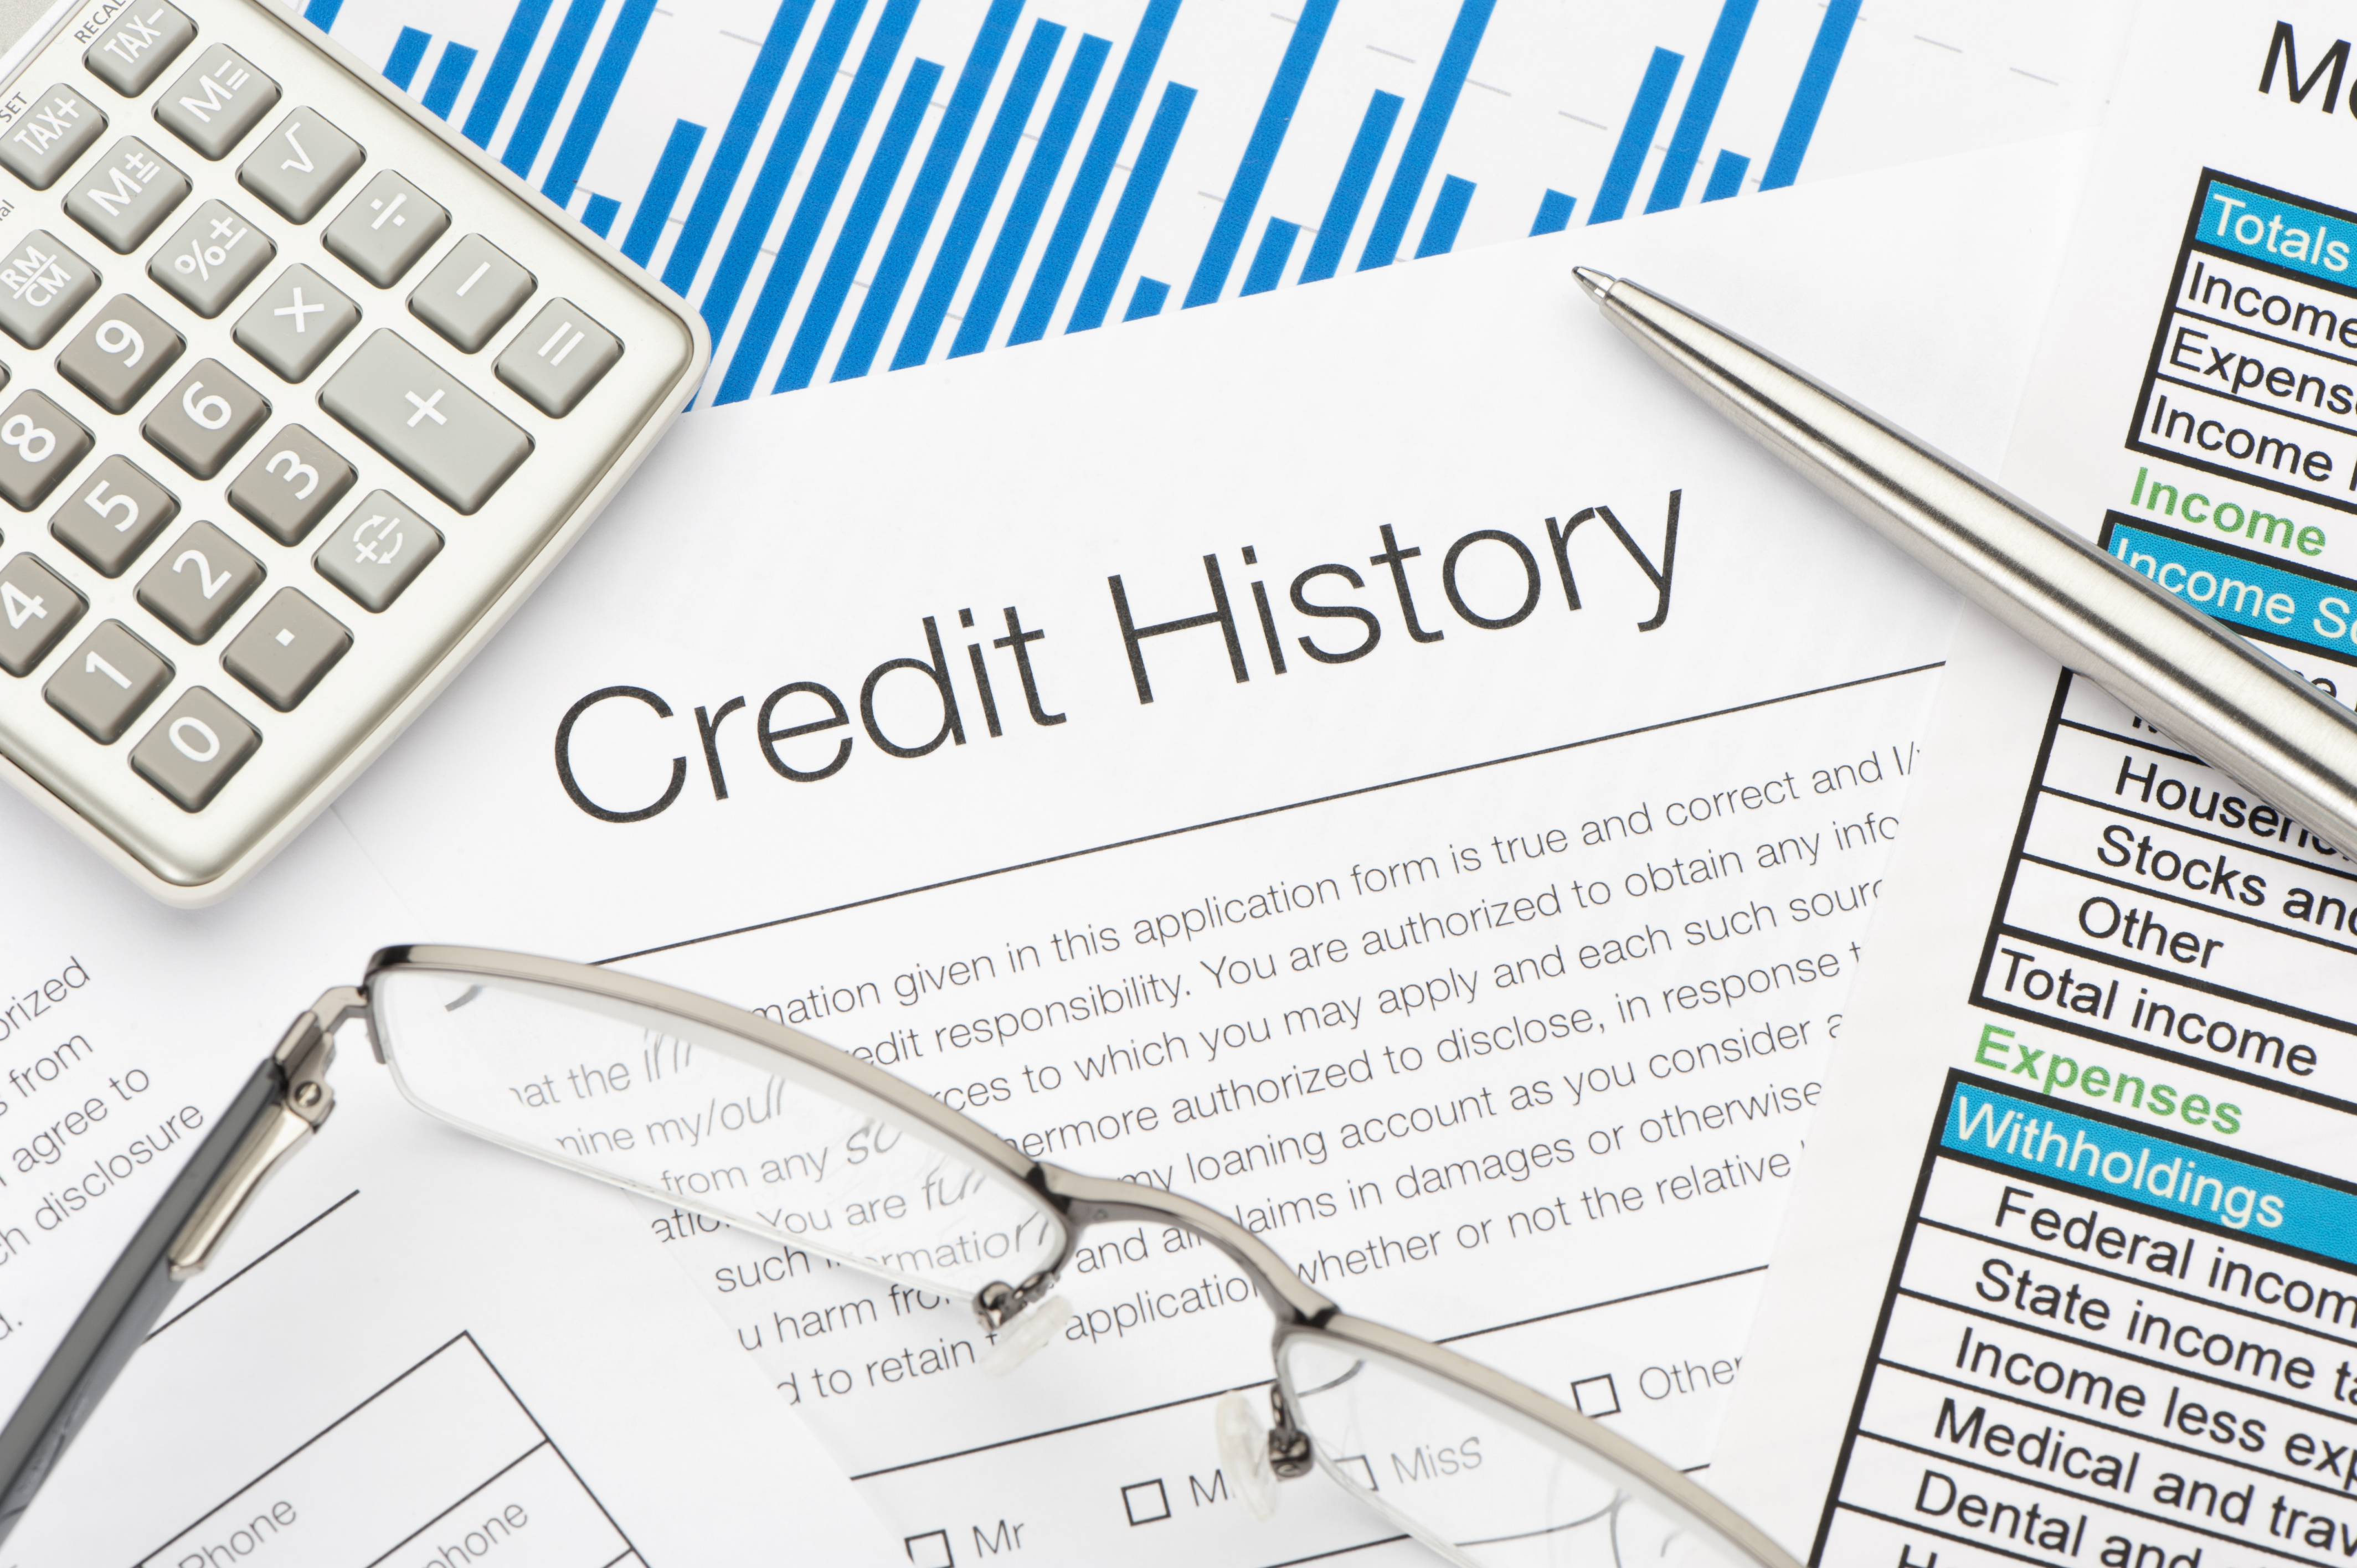 Credit History form